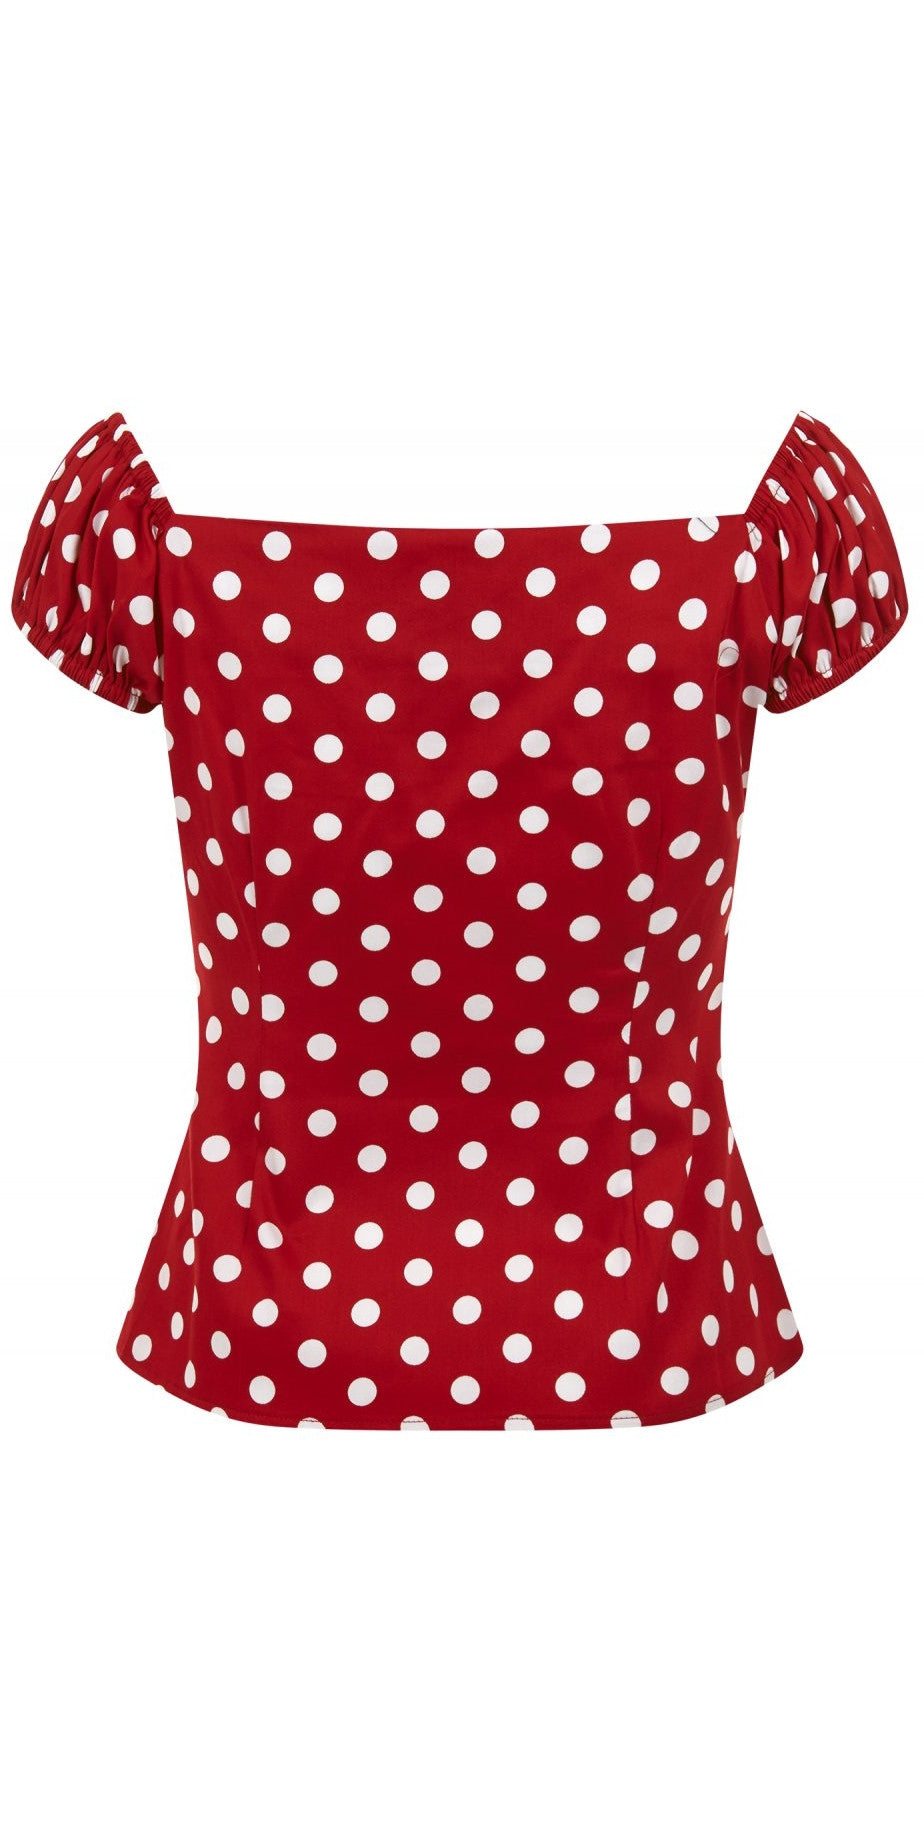 Dolores Top - Red & White Polka Dot